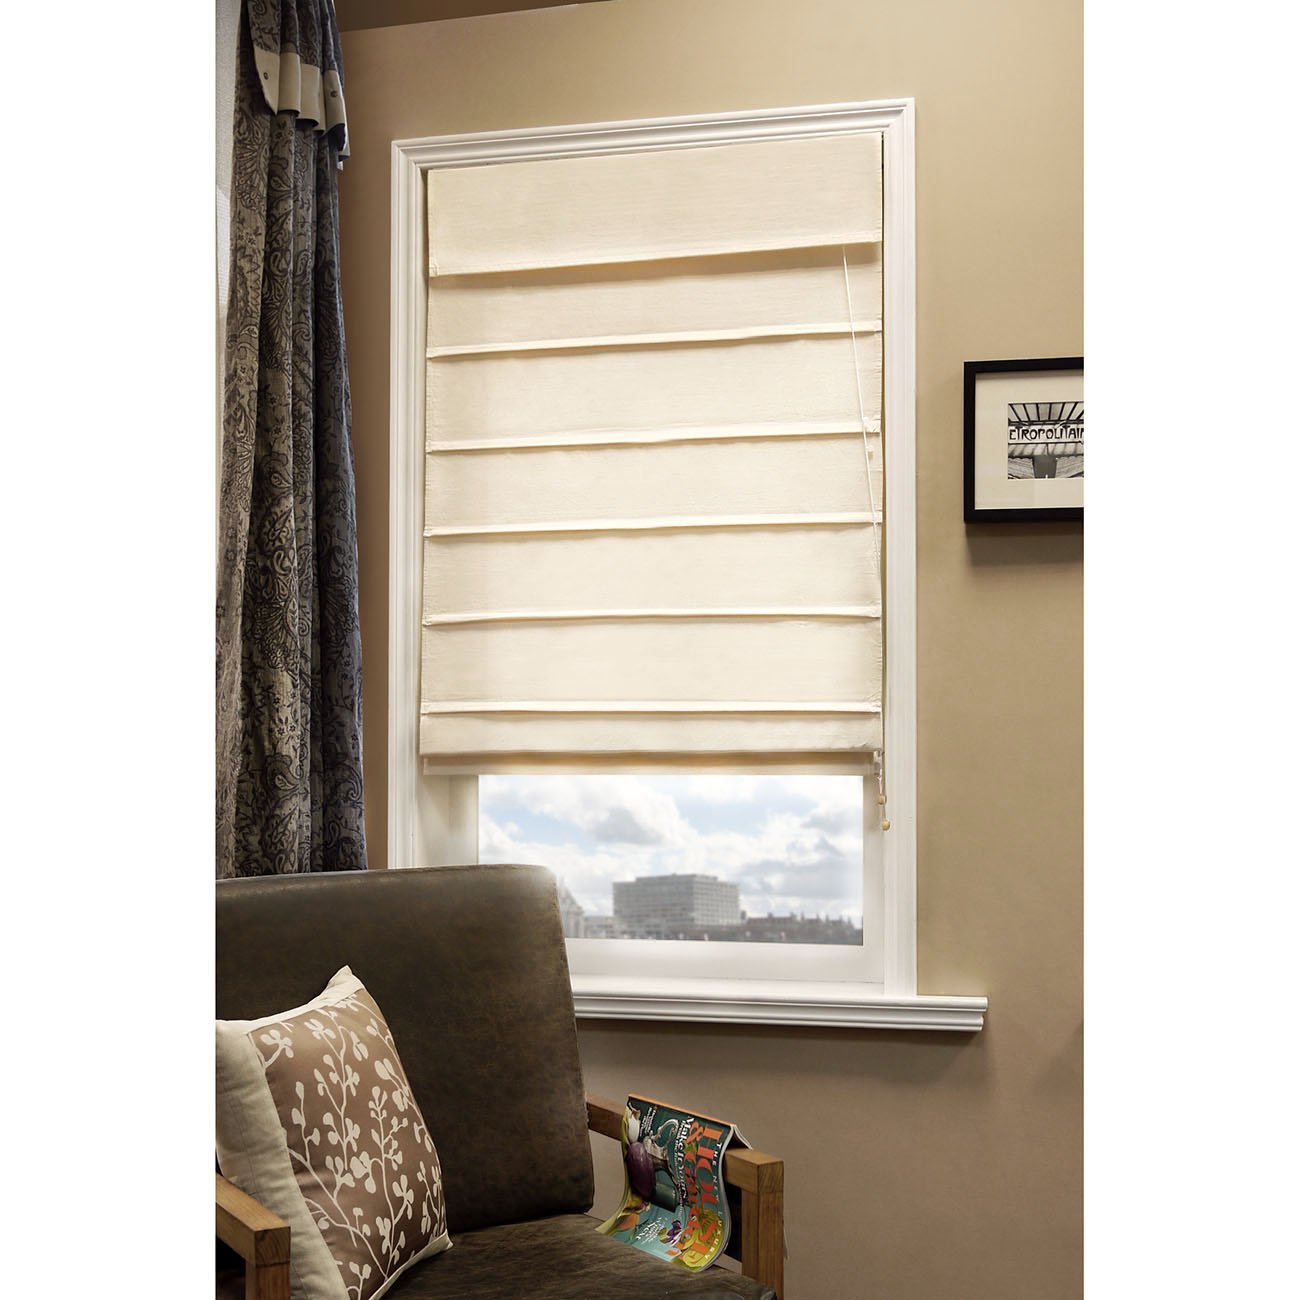 Snow white thermal fabric roman shades free shipping on orders over - Amazon Com Chicology Standard Cord Lift Roman Shades Window Blind Fabric Curtain Drape 100 Cotton Privacy Sahara Sandstone 39 W X 64 H Home